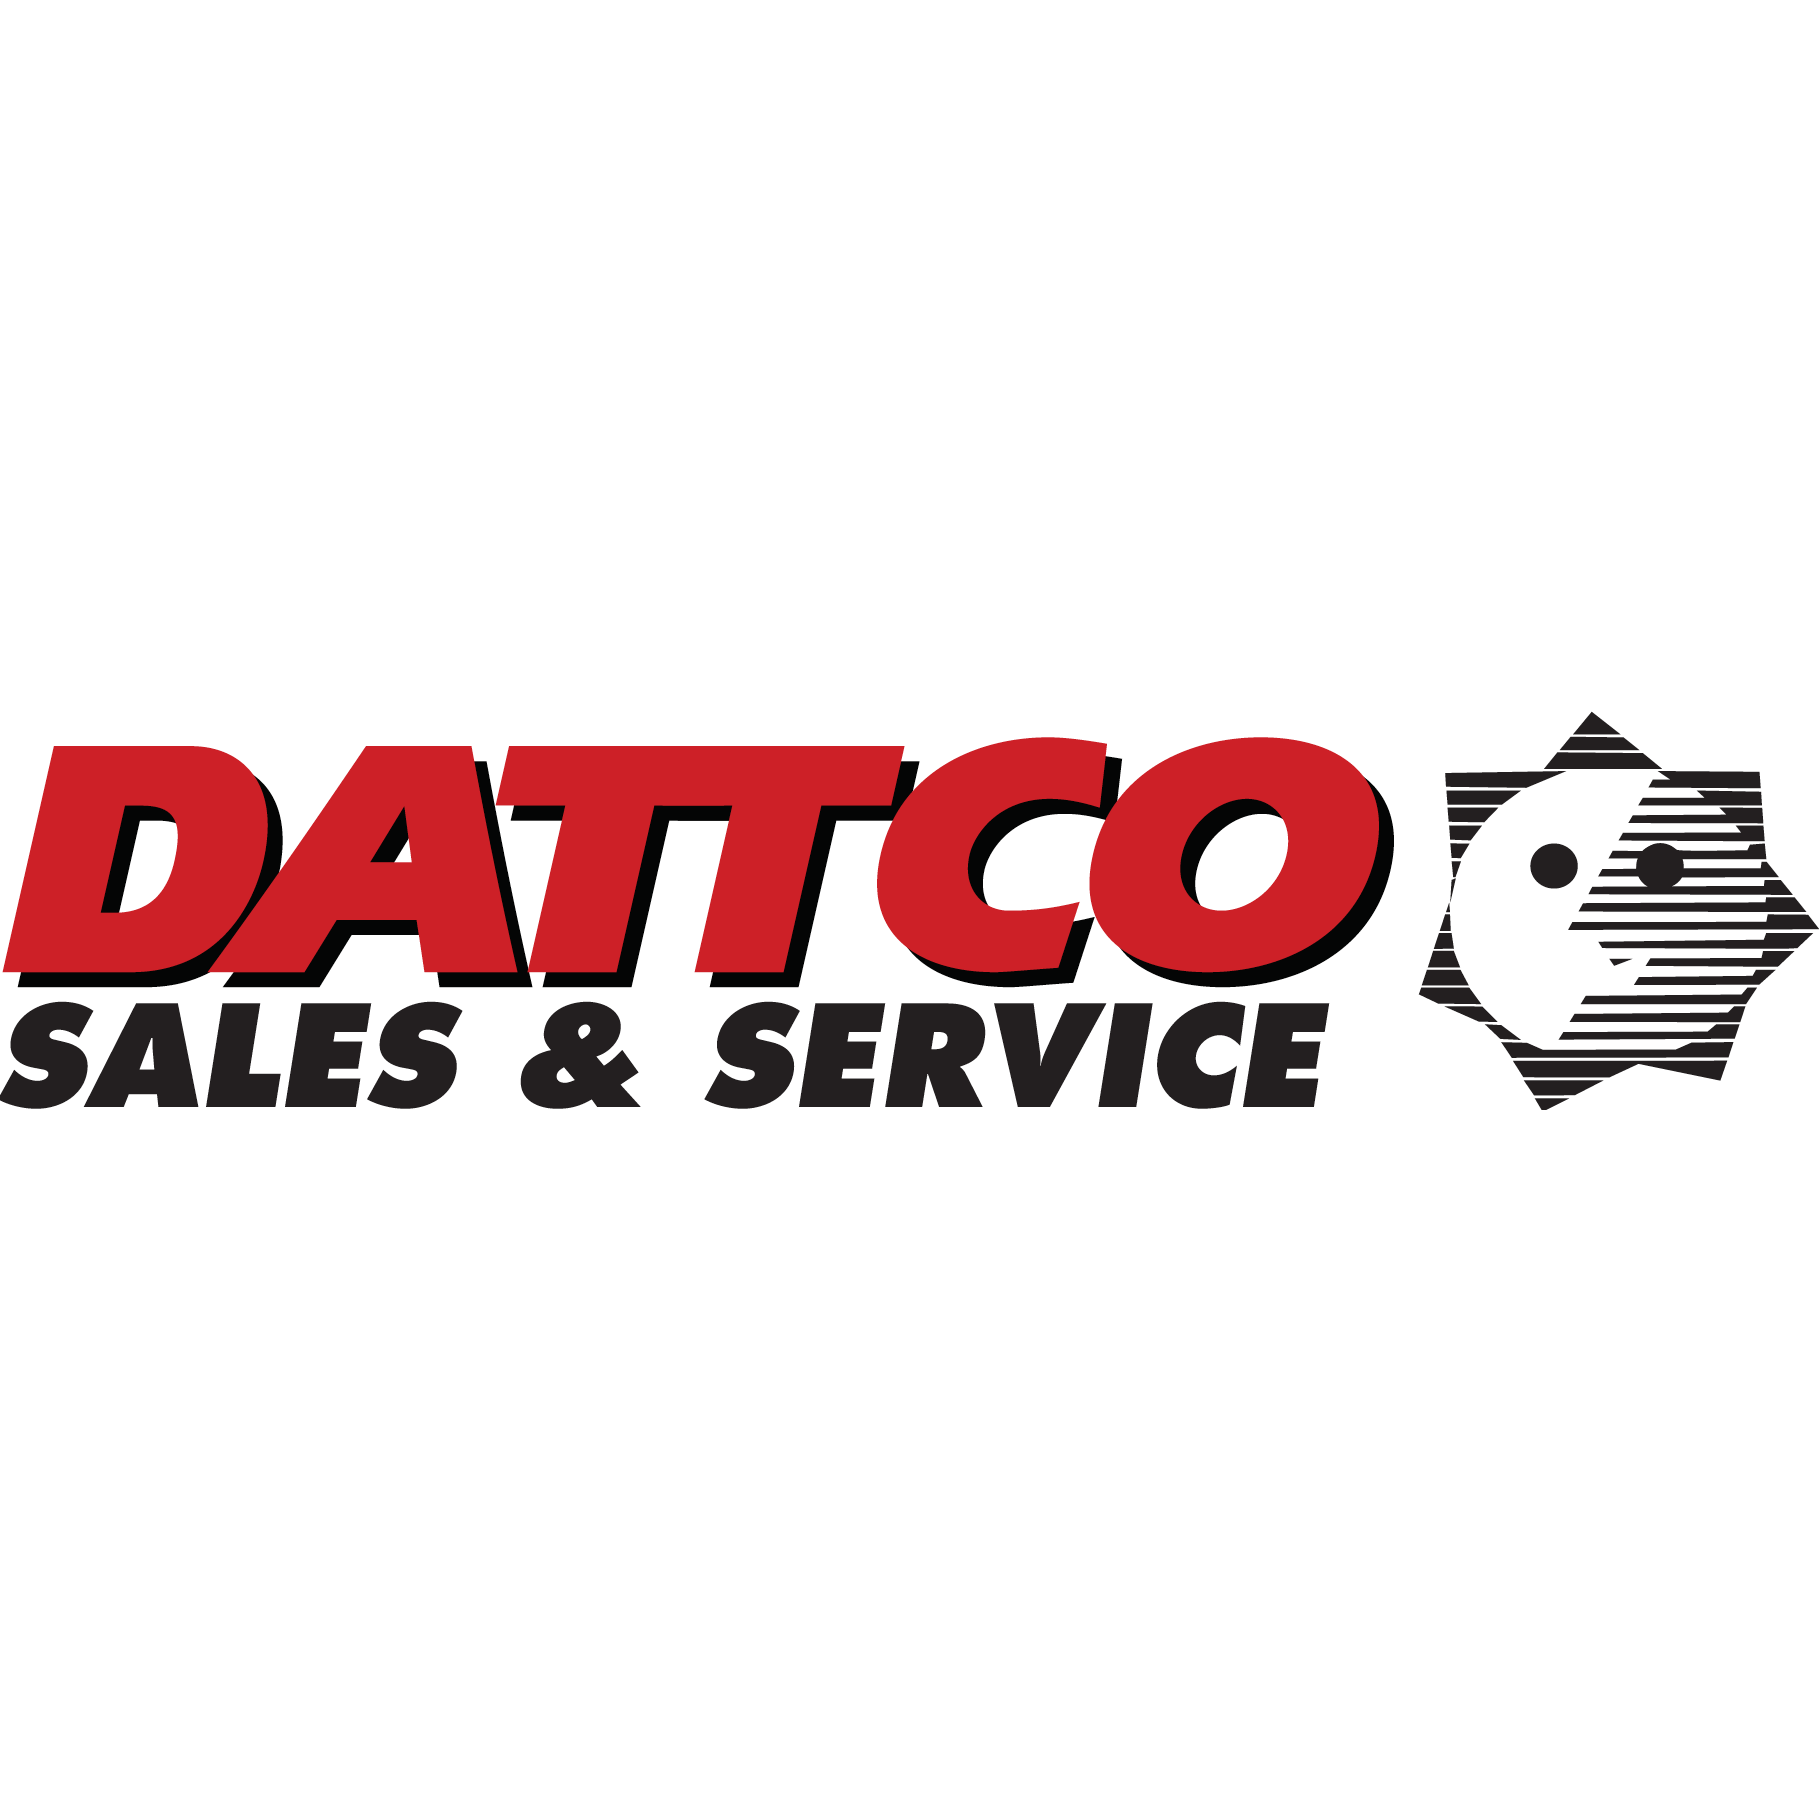 DATTCO Collision Repair